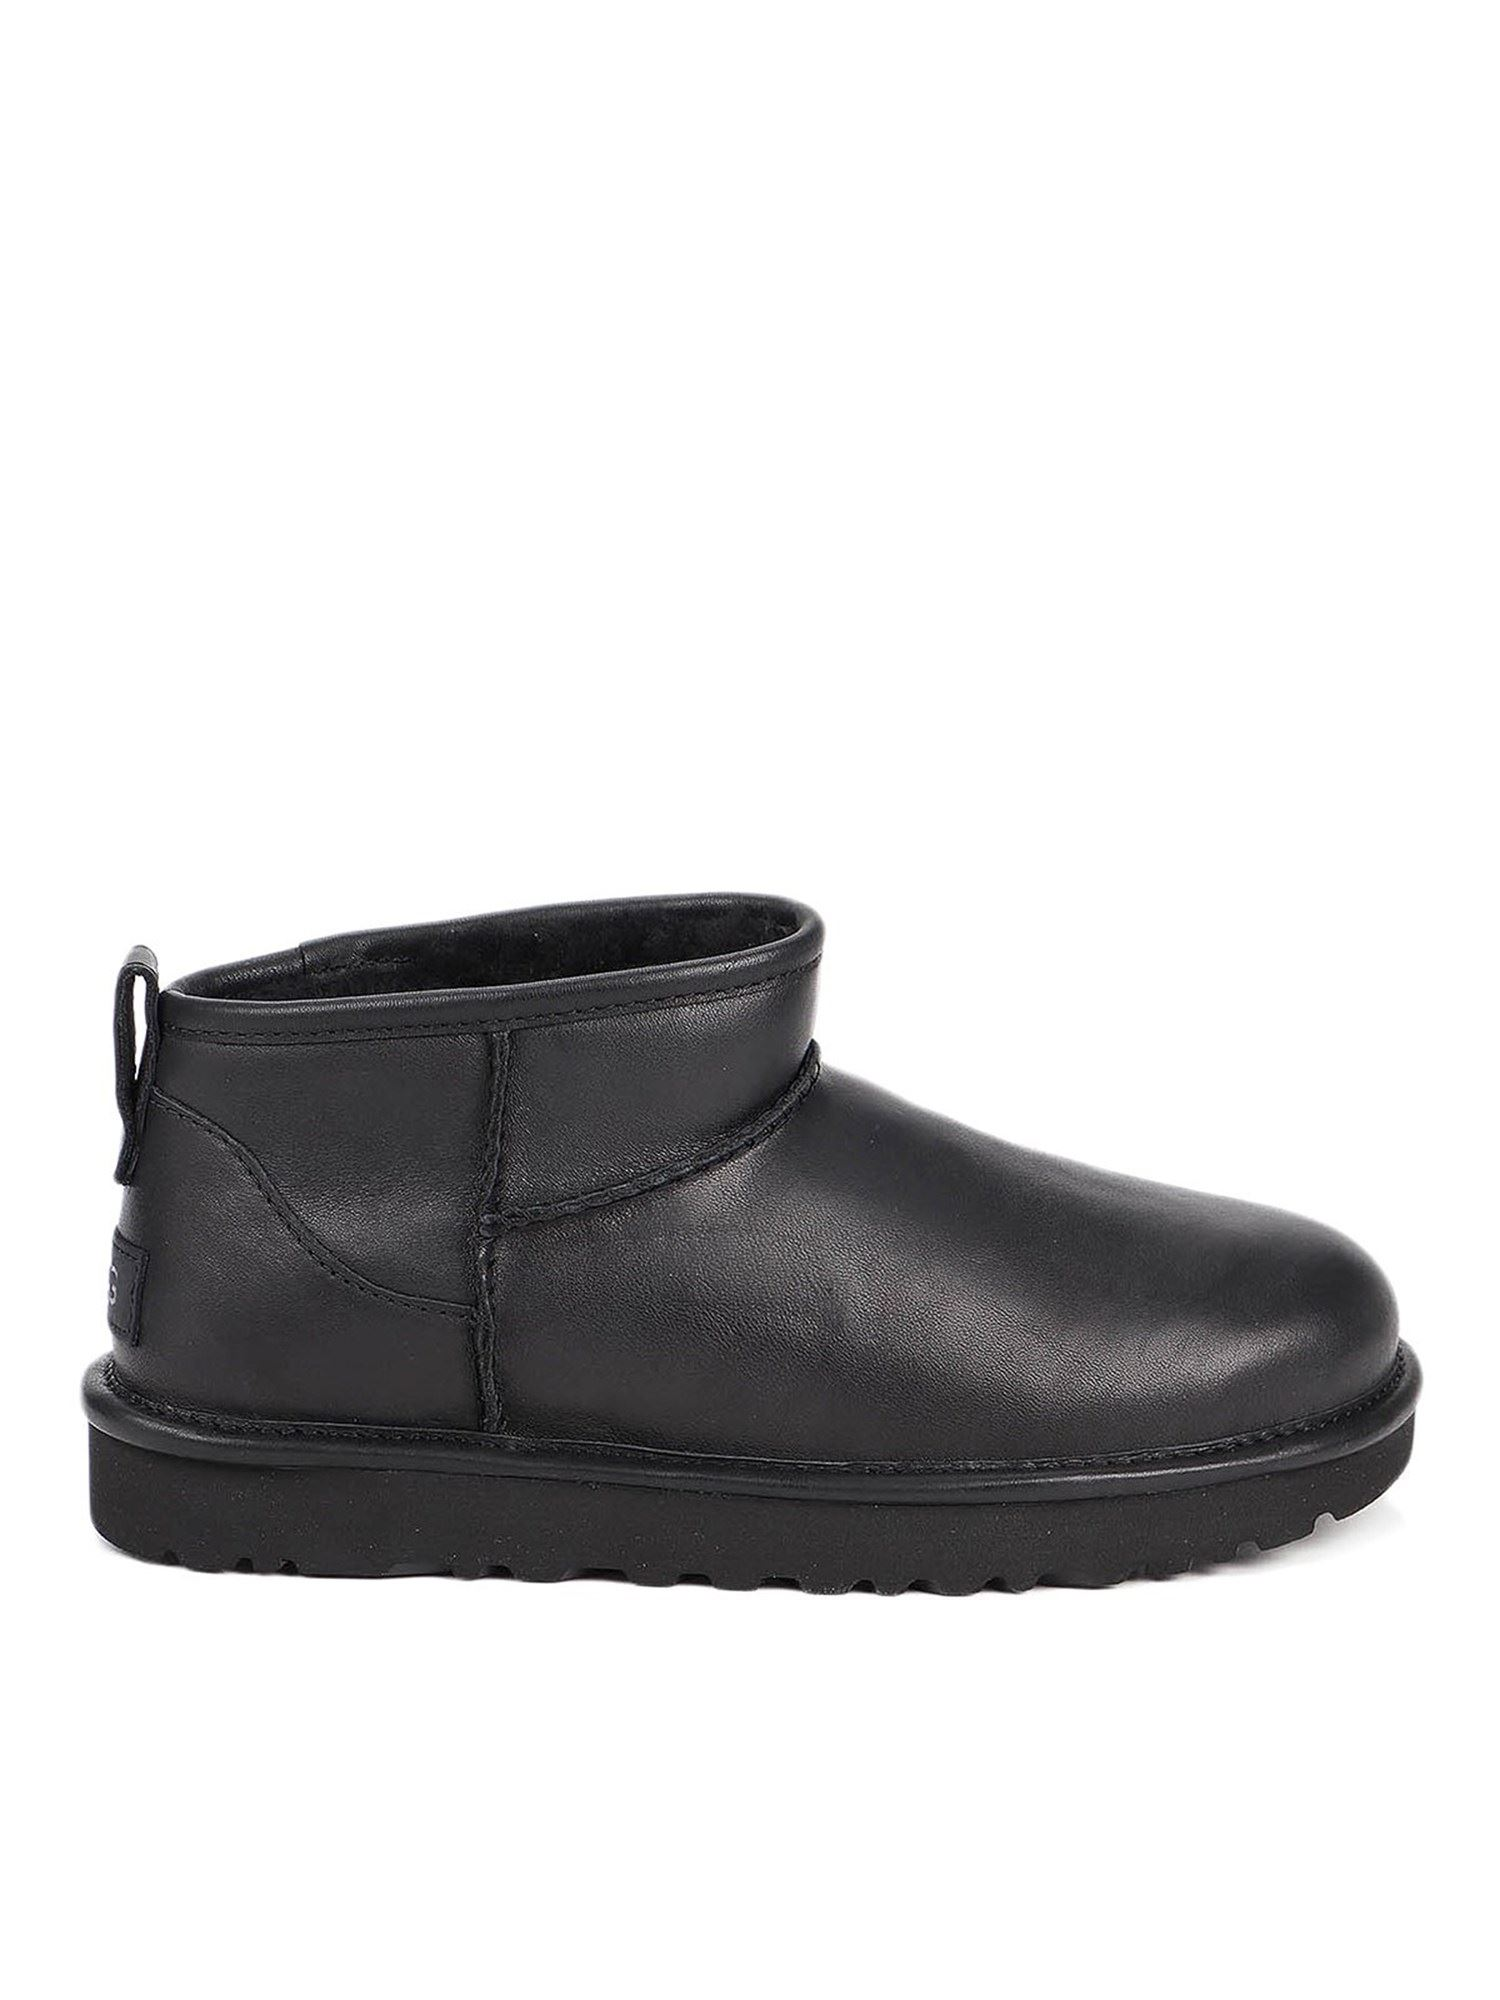 Ugg Leathers UGG CLASSIC ULTRA MINI ANKLE BOOTS IN BLACK